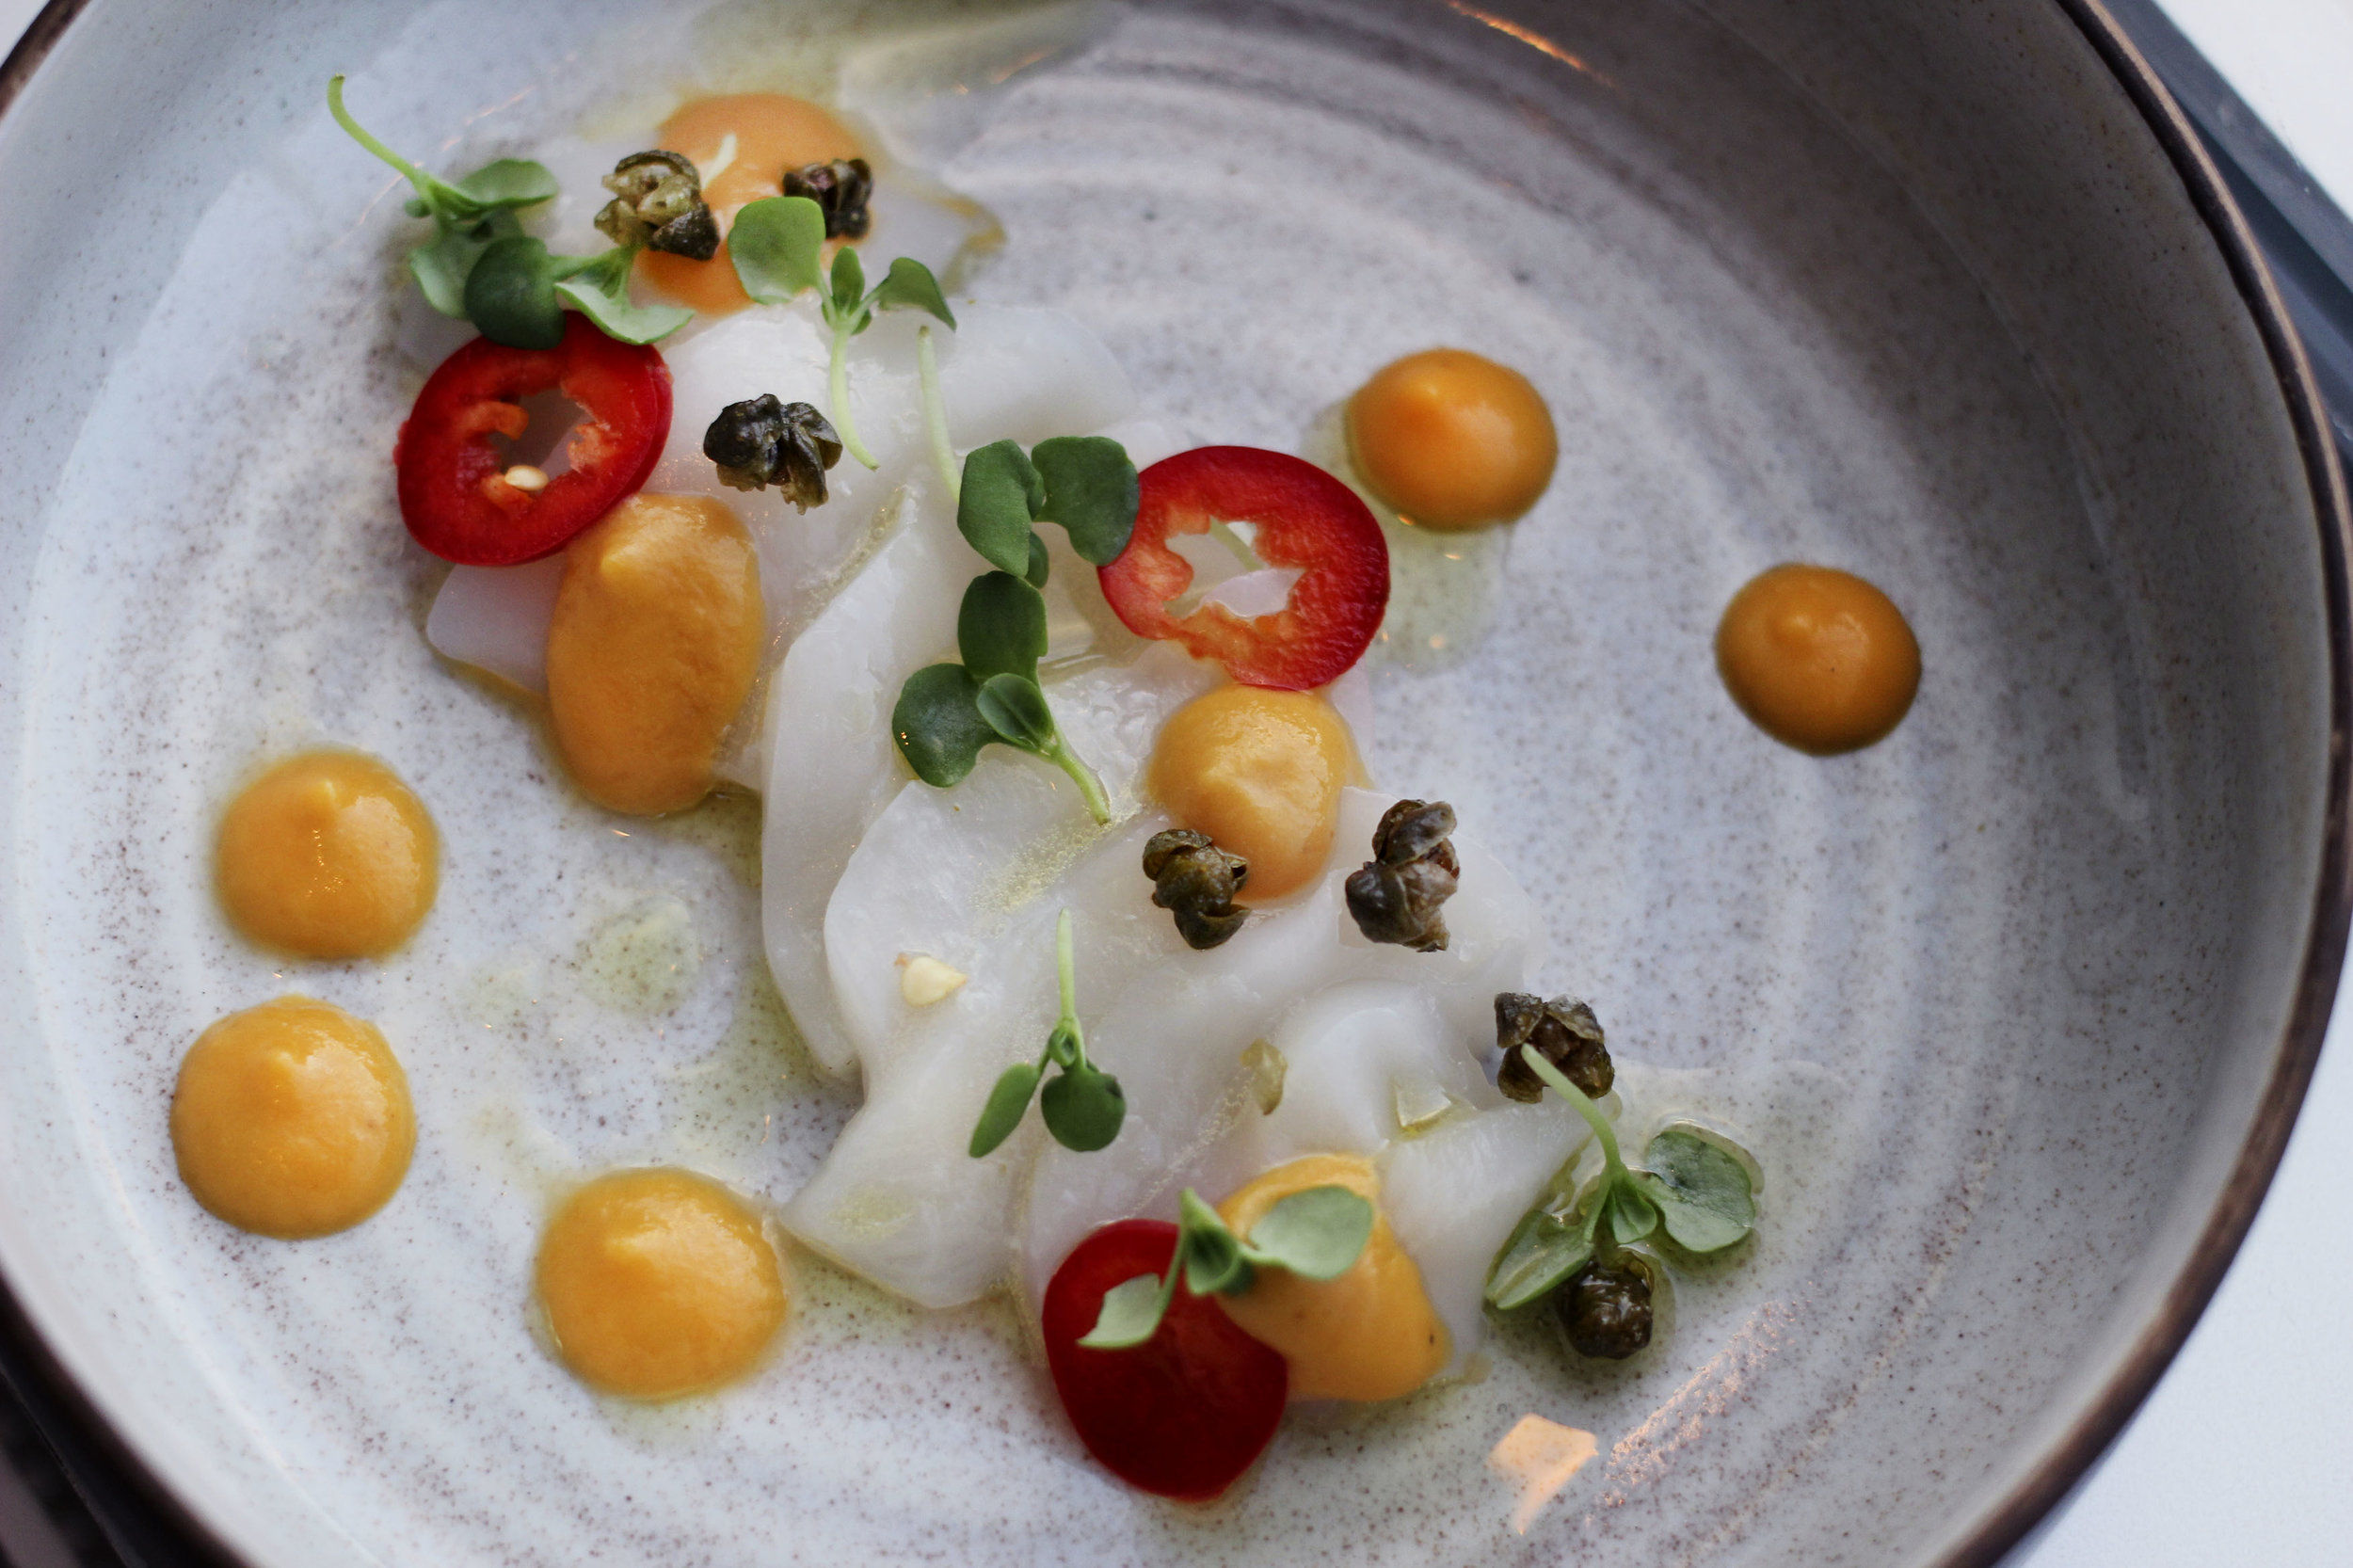 Crudo scallop, garlic oil, capers, tomato coulis fresno pepper